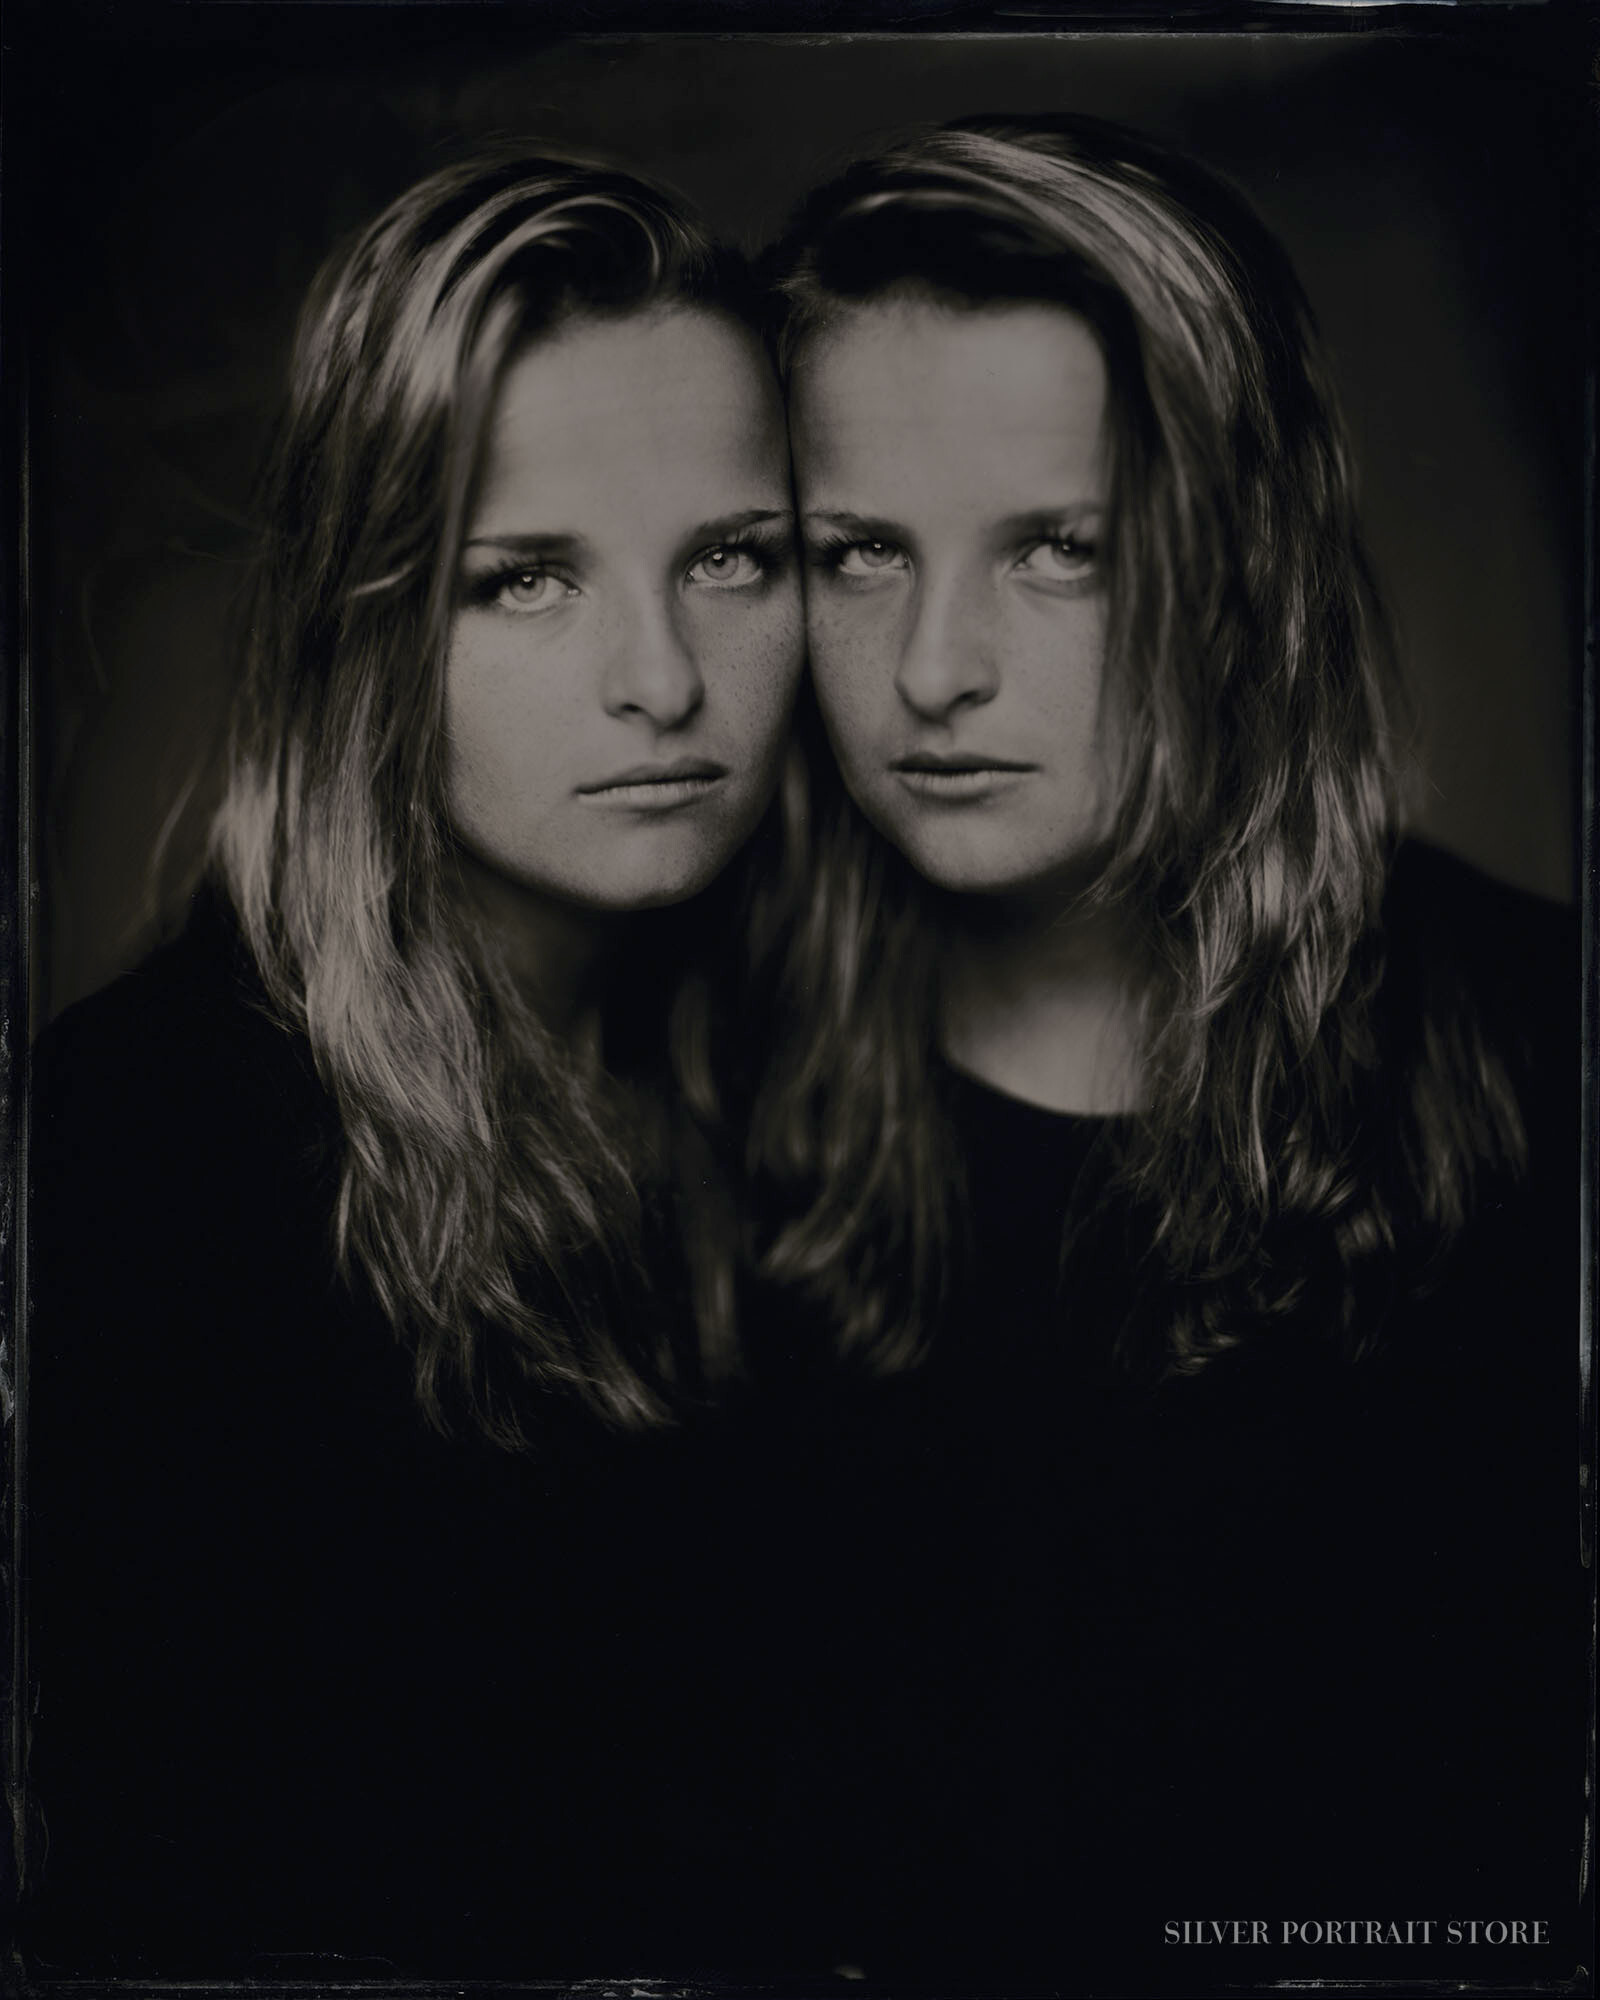 Kelly & Jaimy-Silver Portrait Store-Scan from Wet plate collodion-Tintype 20 x 25 cm